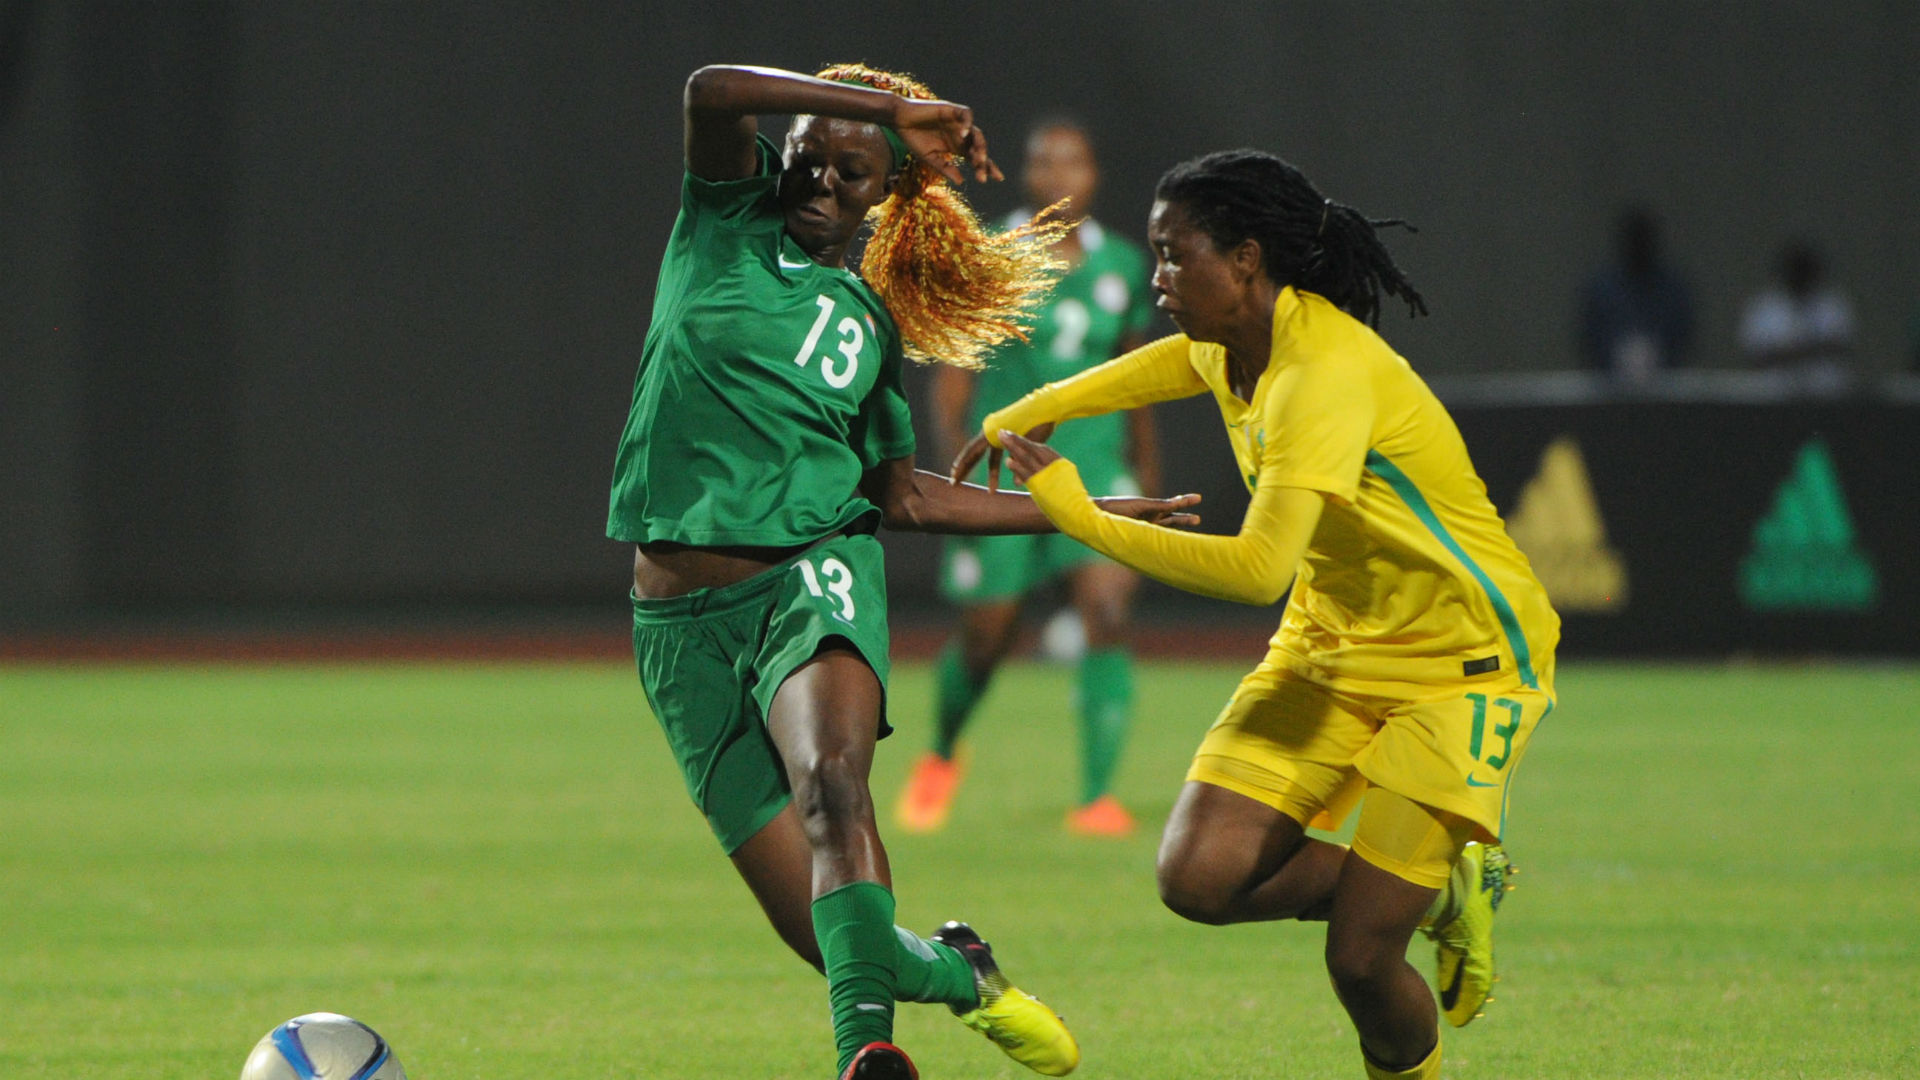 AWCON 2016: Buhari Hails Falcons As They Qualify For Finals